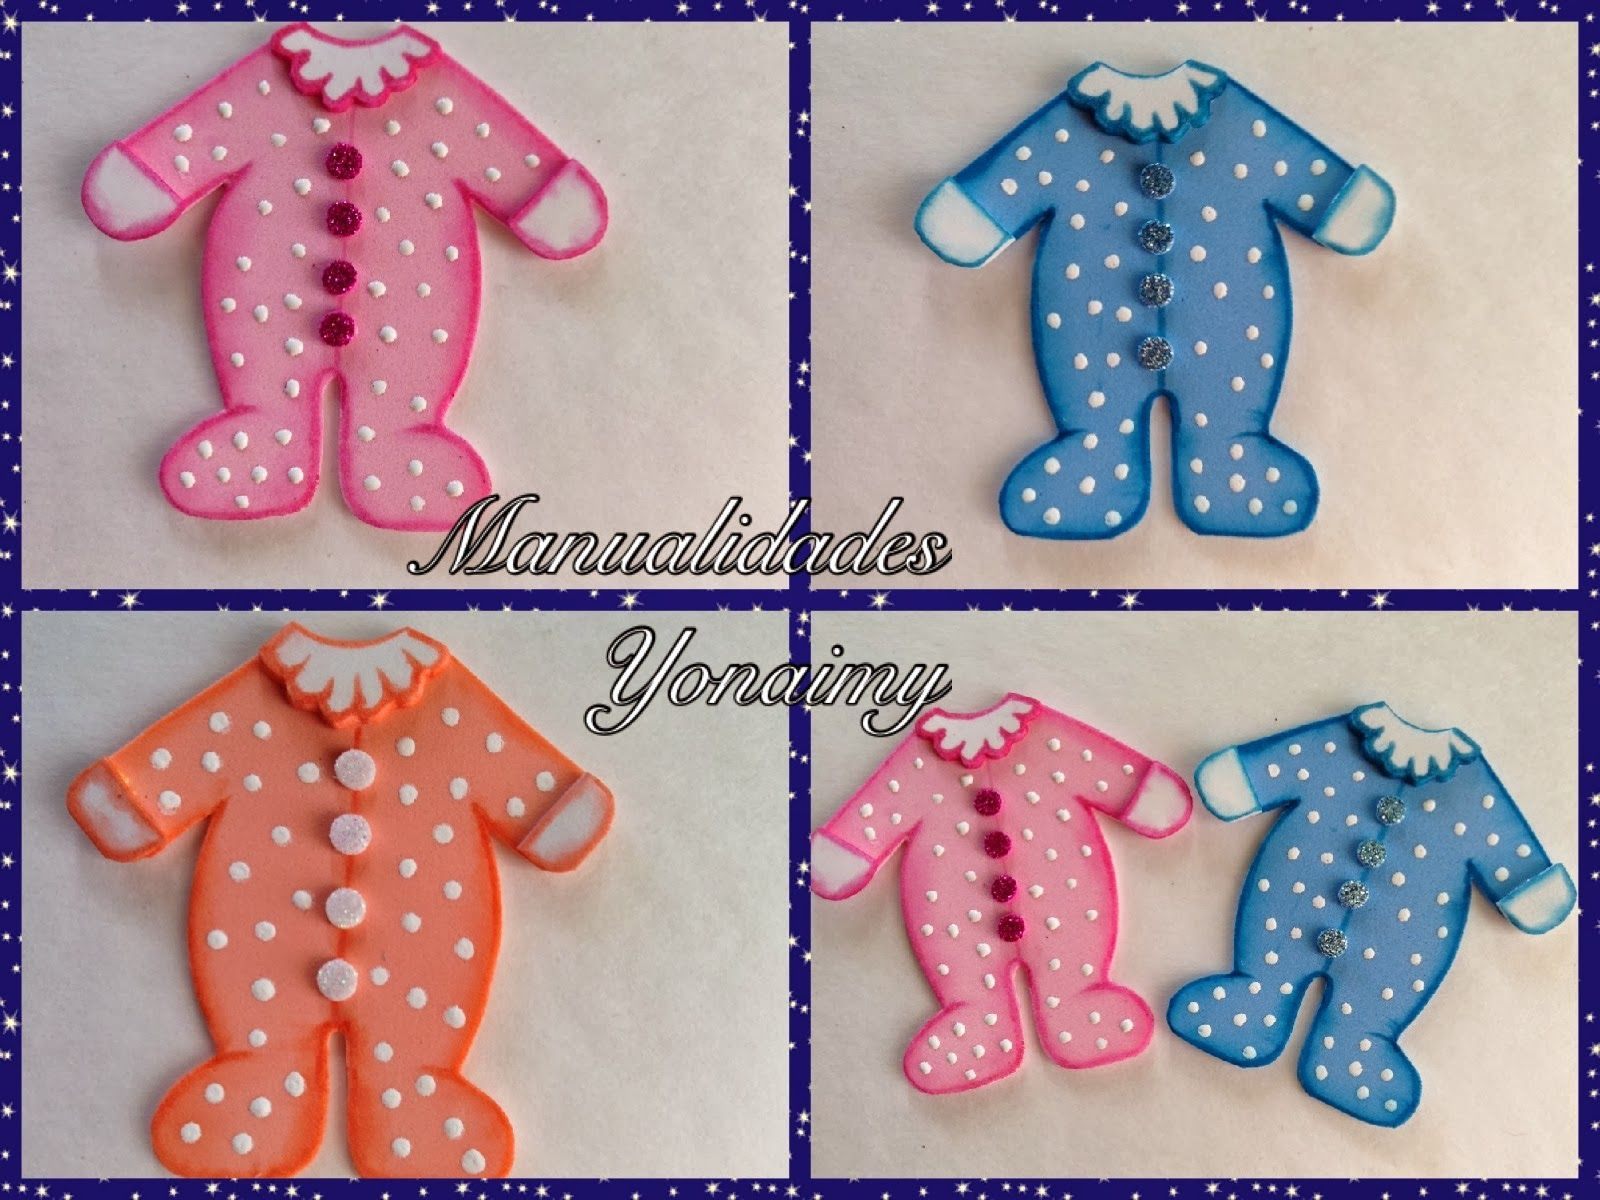 Baby Showers Manualidades ~ Manualidades yonaimy mamelucos completos para baby shower